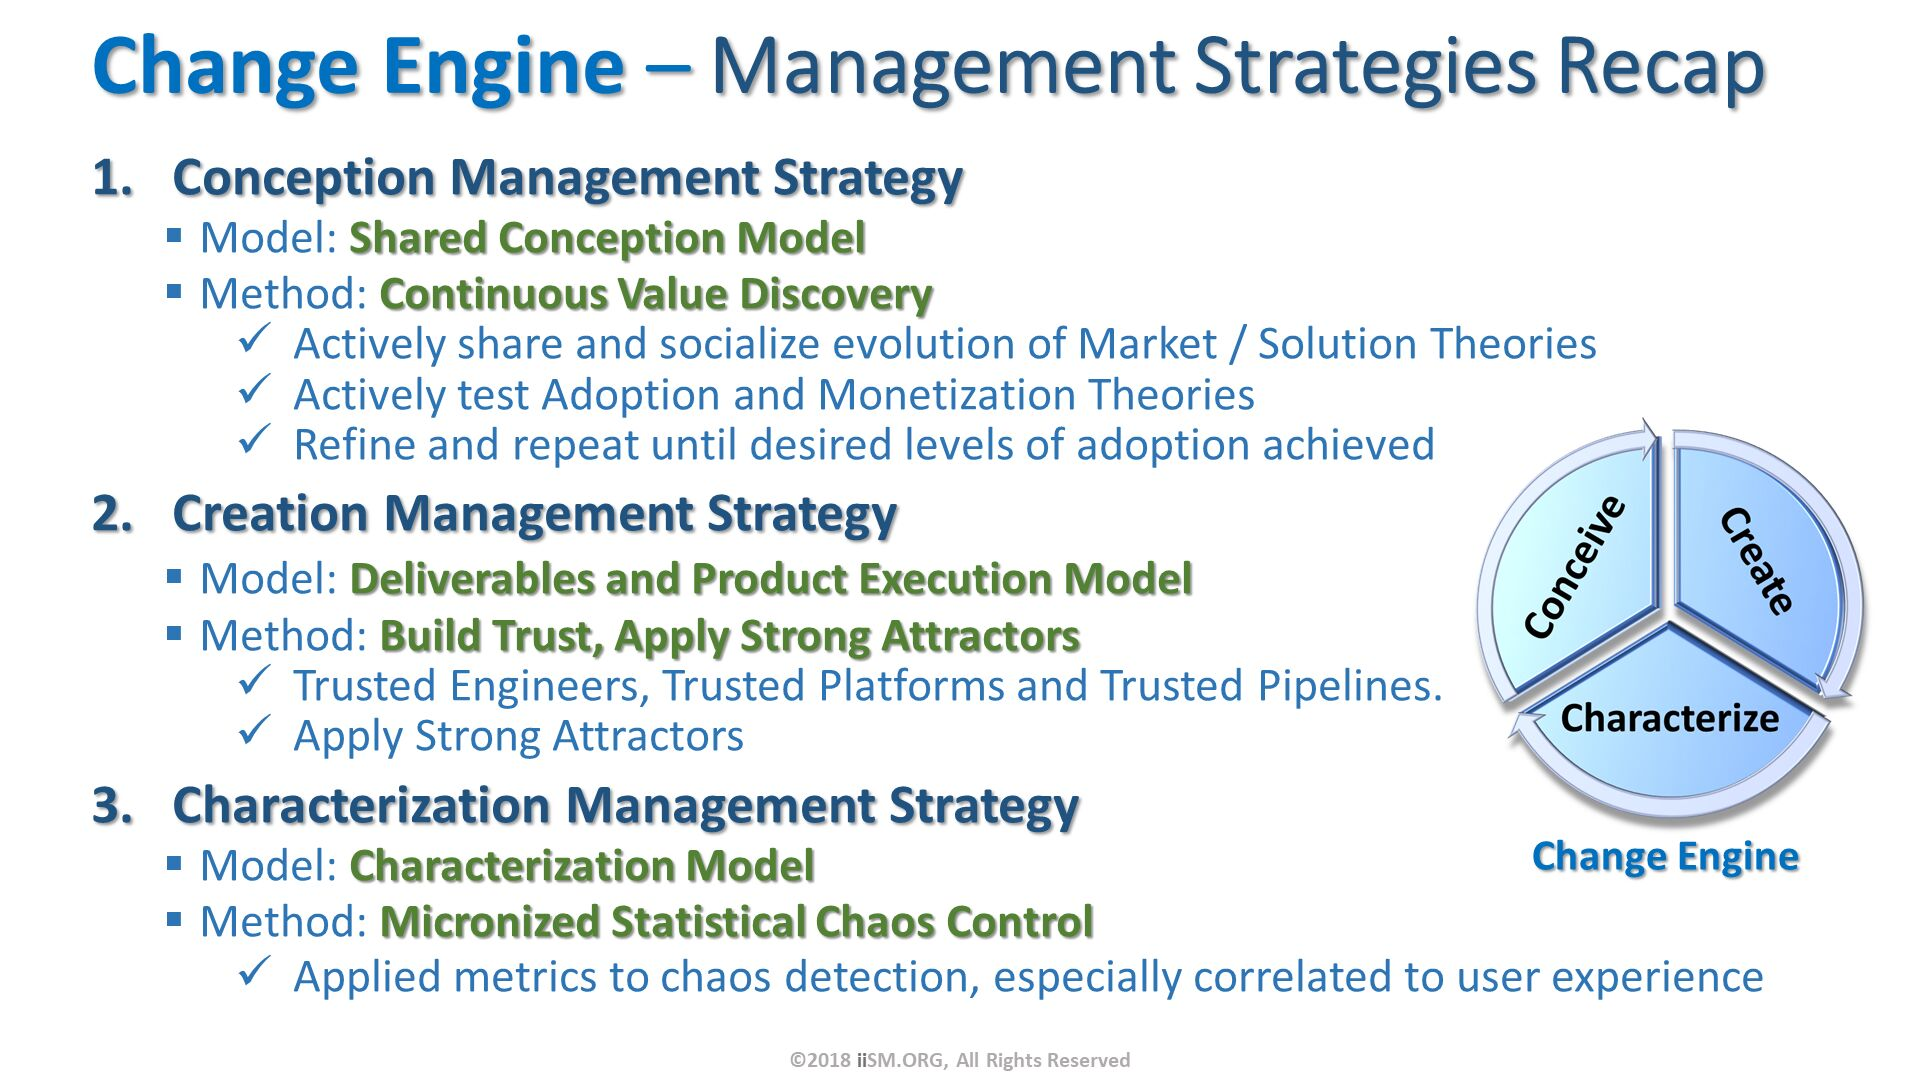 Change Engine – Management Strategies Recap. Conception Management Strategy Model: Shared Conception Model Method: Continuous Value Discovery Actively share and socialize evolution of Market / Solution Theories Actively test Adoption and Monetization Theories Refine and repeat until desired levels of adoption achieved Creation Management Strategy Model: Deliverables and Product Execution Model Method: Build Trust, Apply Strong Attractors Trusted Engineers, Trusted Platforms and Trusted Pipelines. Apply Strong Attractors Characterization Management Strategy Model: Characterization Model Method: Micronized Statistical Chaos Control Applied metrics to chaos detection, especially correlated to user experience. ©2018 iiSM.ORG, All Rights Reserved.